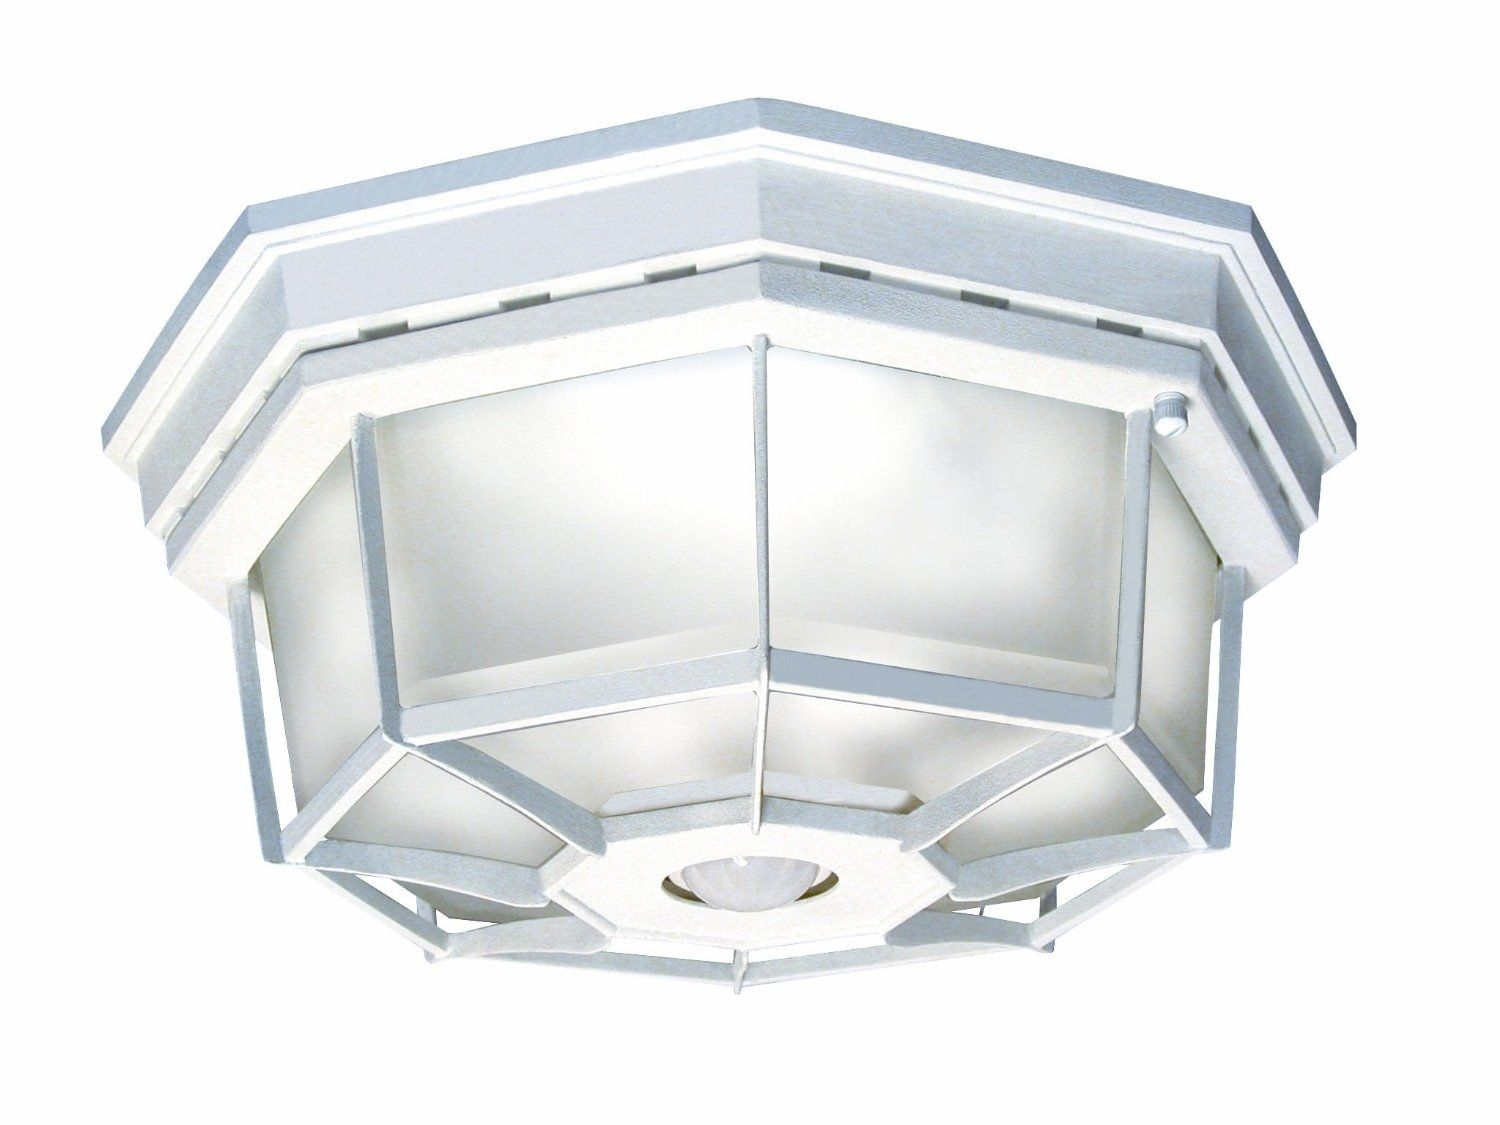 Inspiration about Motion Sensor Outdoor Ceiling Light Fixture | Http In Outdoor Ceiling Lights With Motion Sensor (#4 of 15)